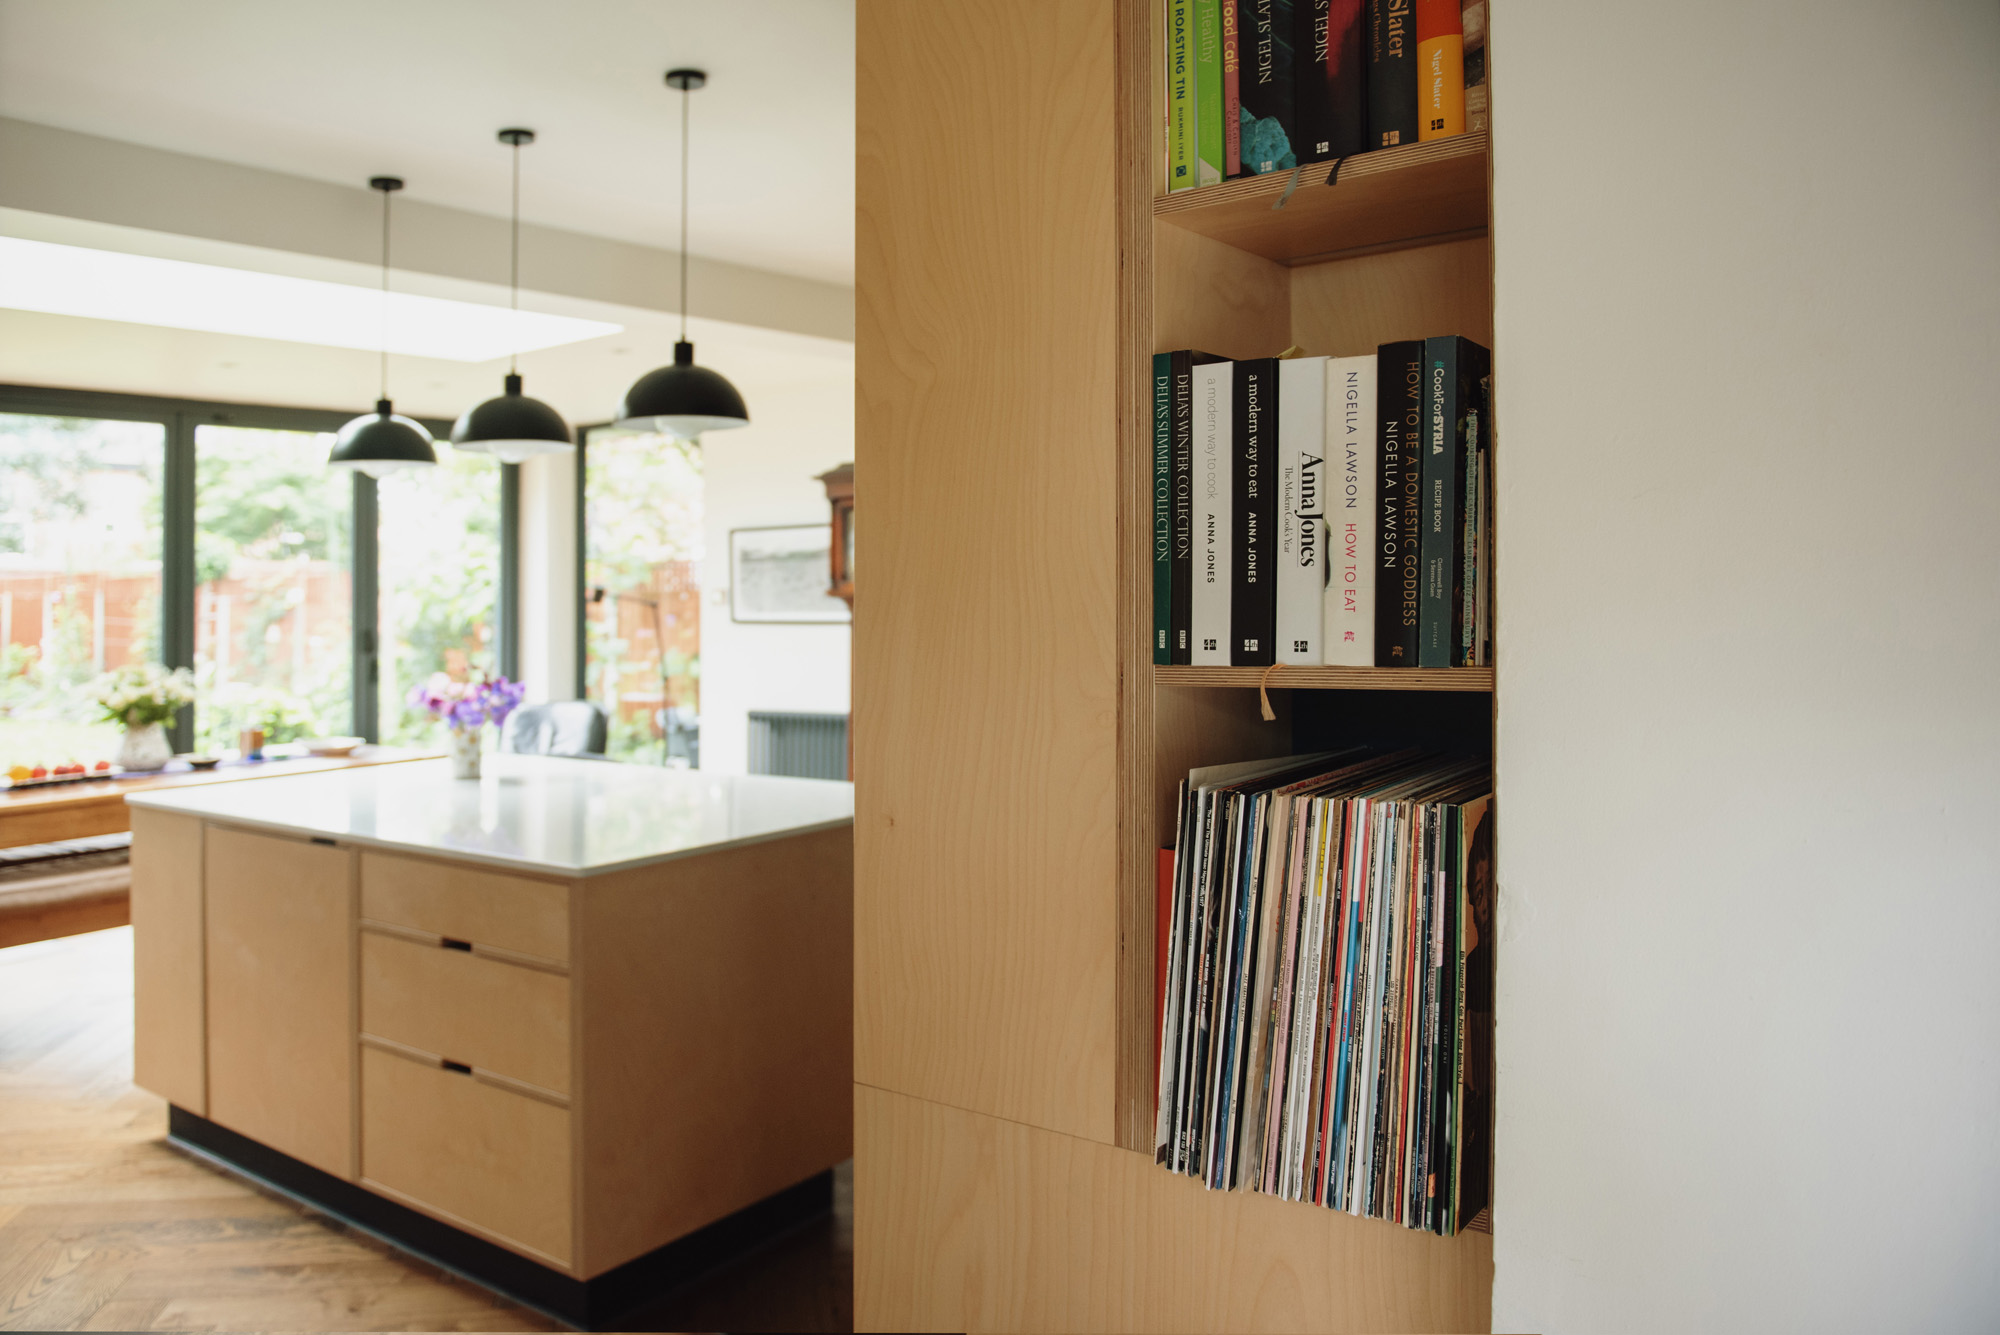 open plywood shelving between kitchen and utility